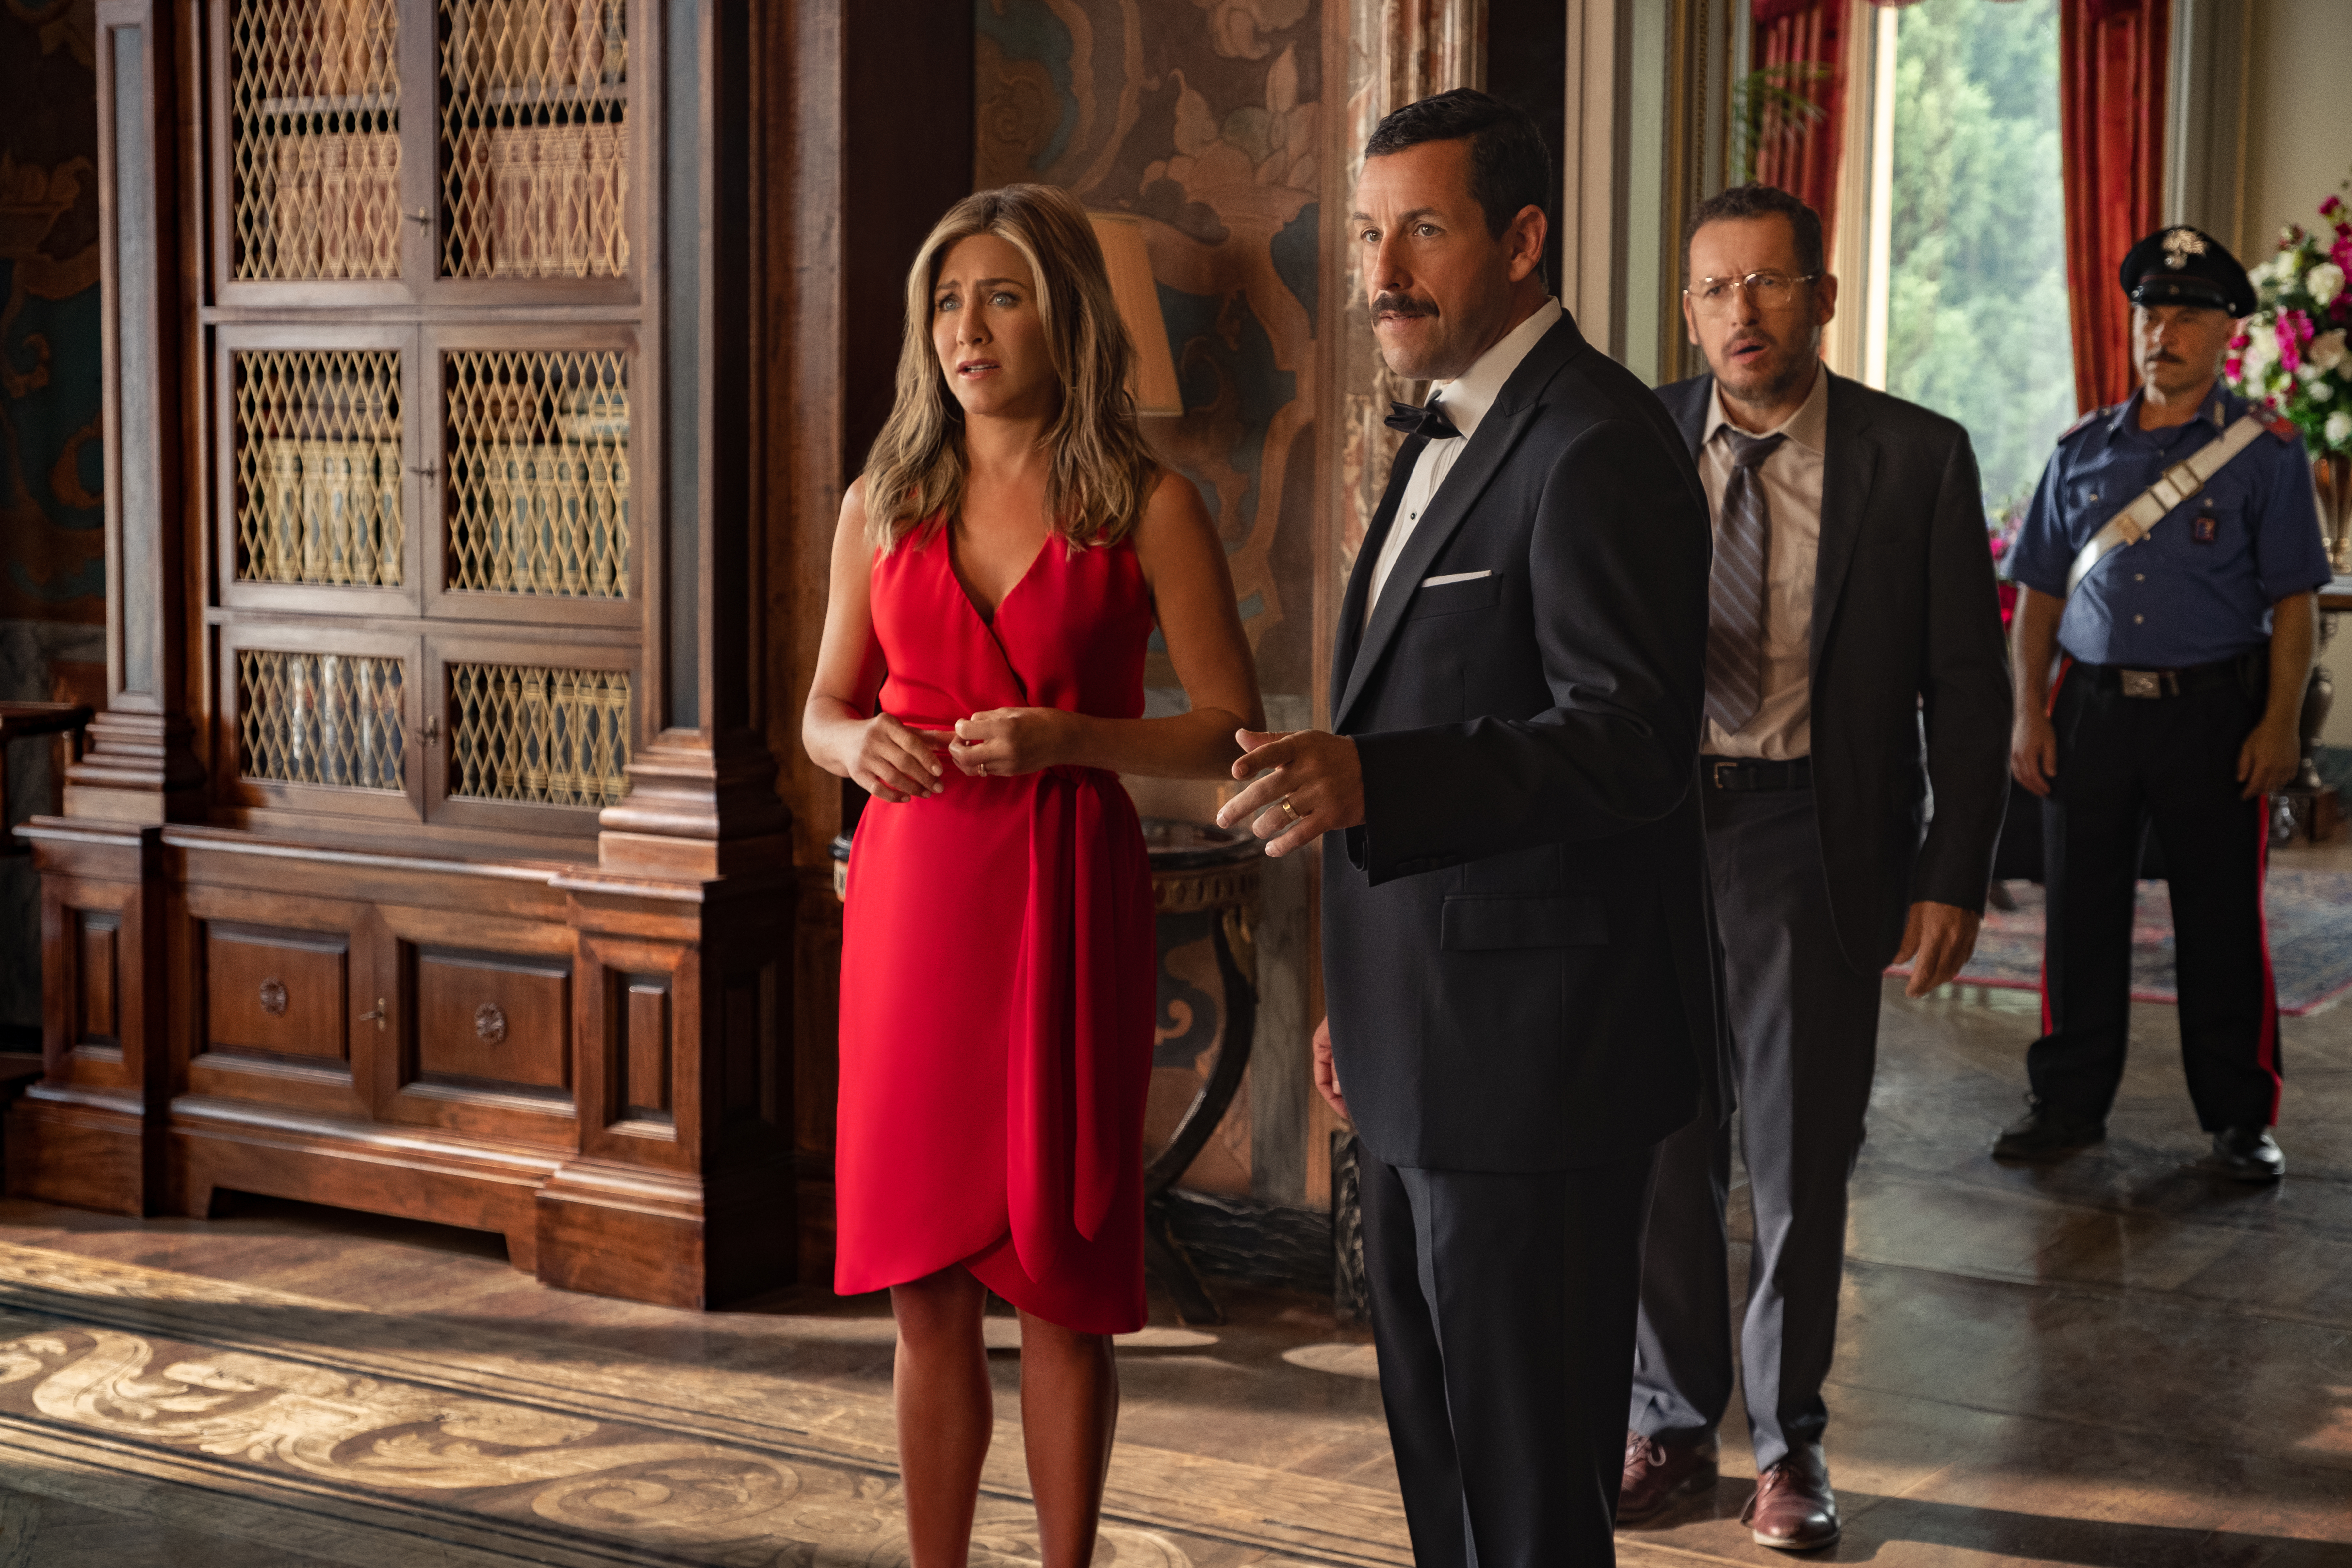 Netflix's Murder Mystery is a surprisingly fun romp starring Adam Sandler and Jennifer Aniston